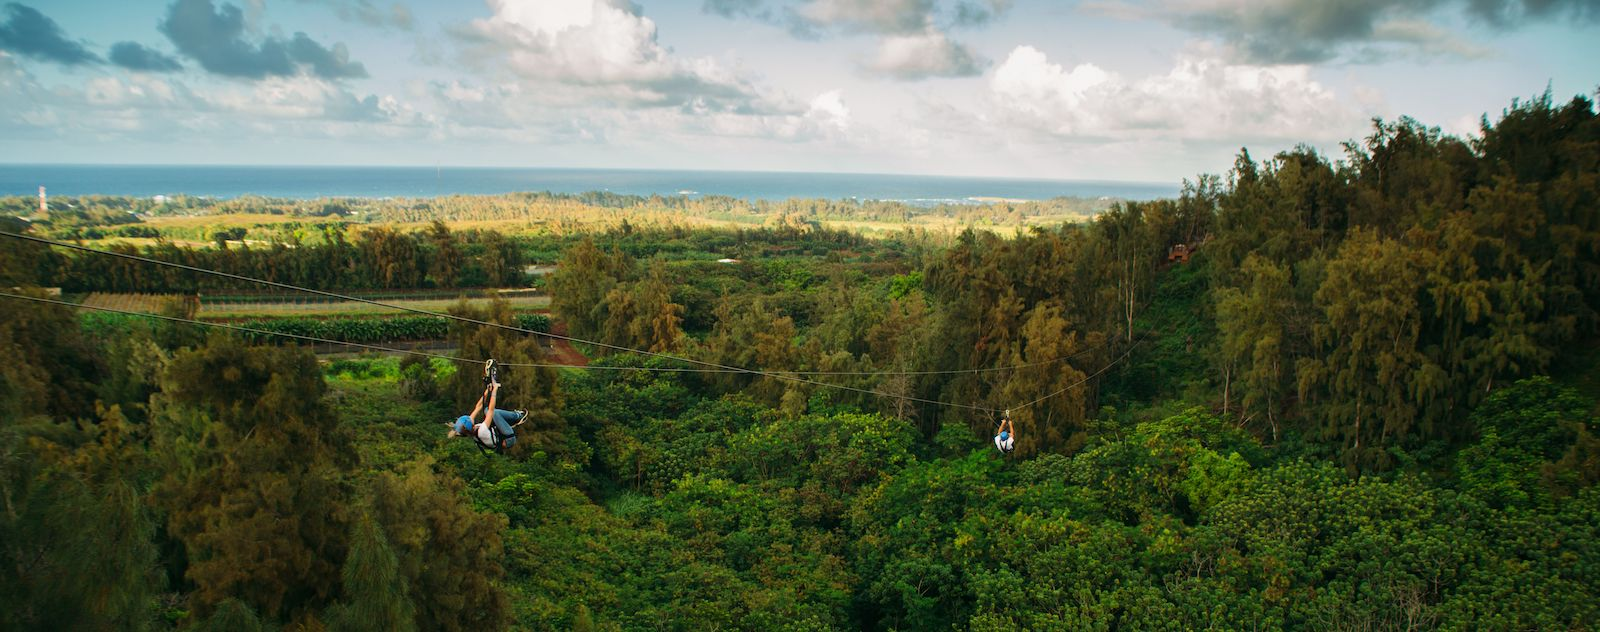 4 Reasons Our Ziplines in Hawaii are the Best Way to Experience the Beauty of Oahu's North Shore